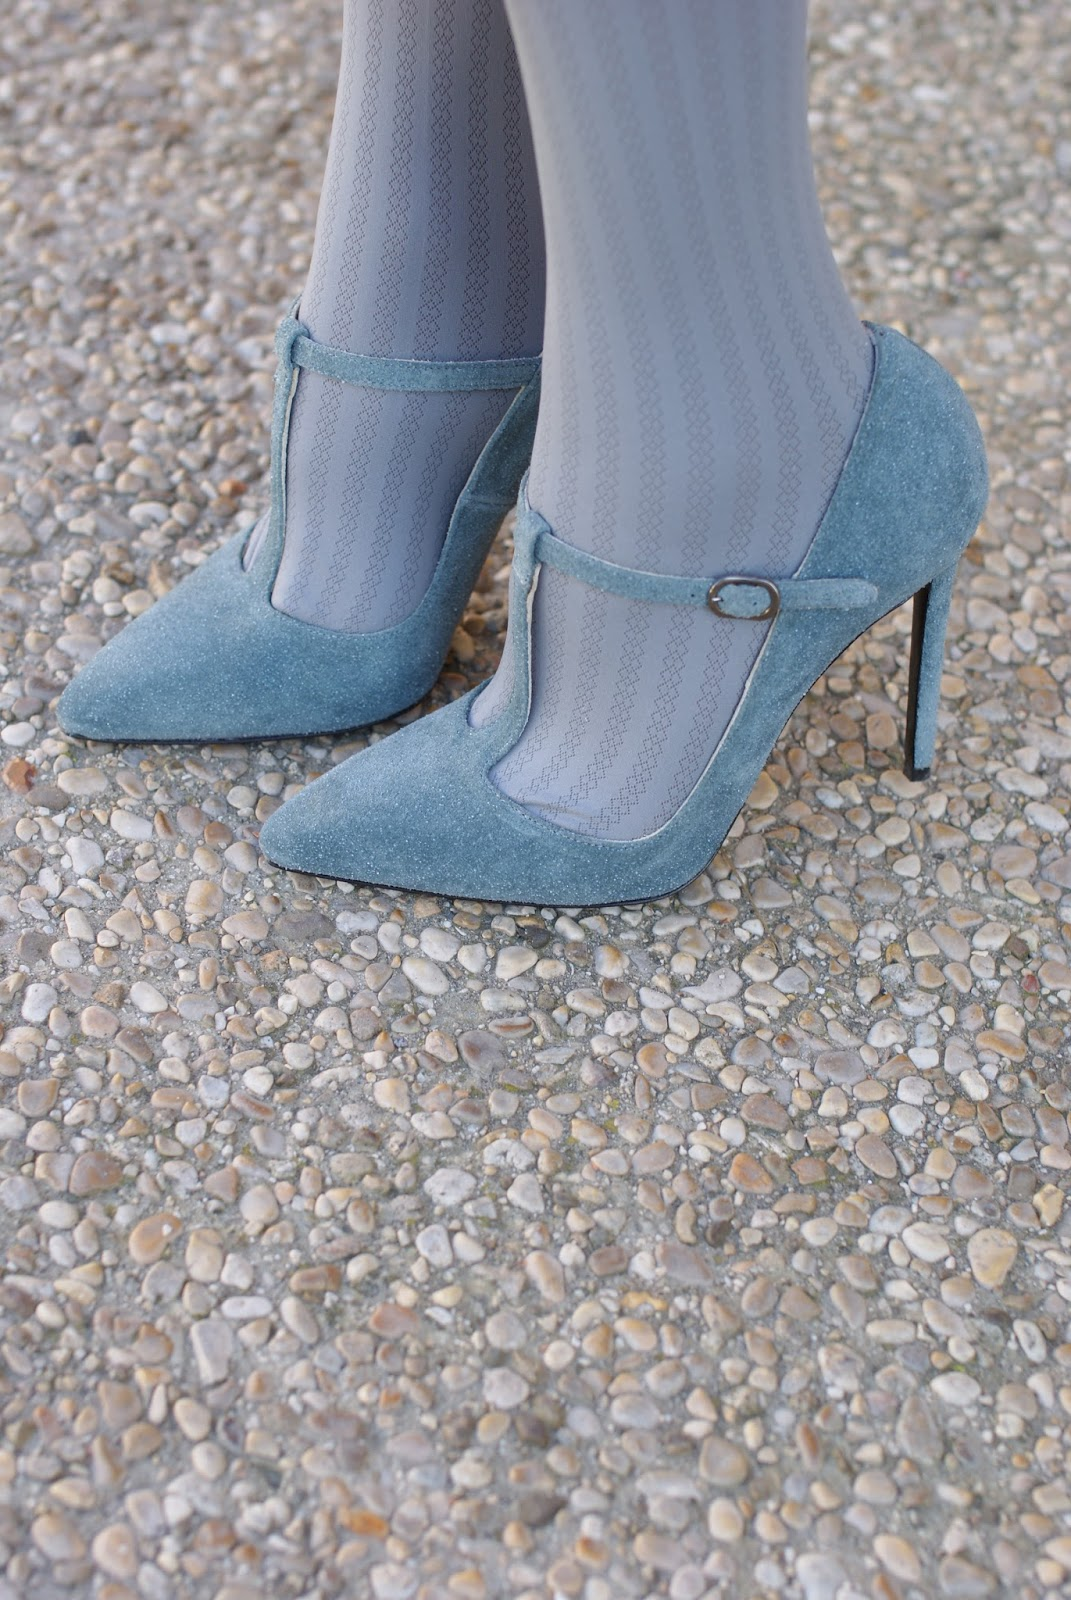 serenity azure gaia d'este t-bar shoes for a romantic outfit on Fashion and Cookies fashion blog, fashion blogger style